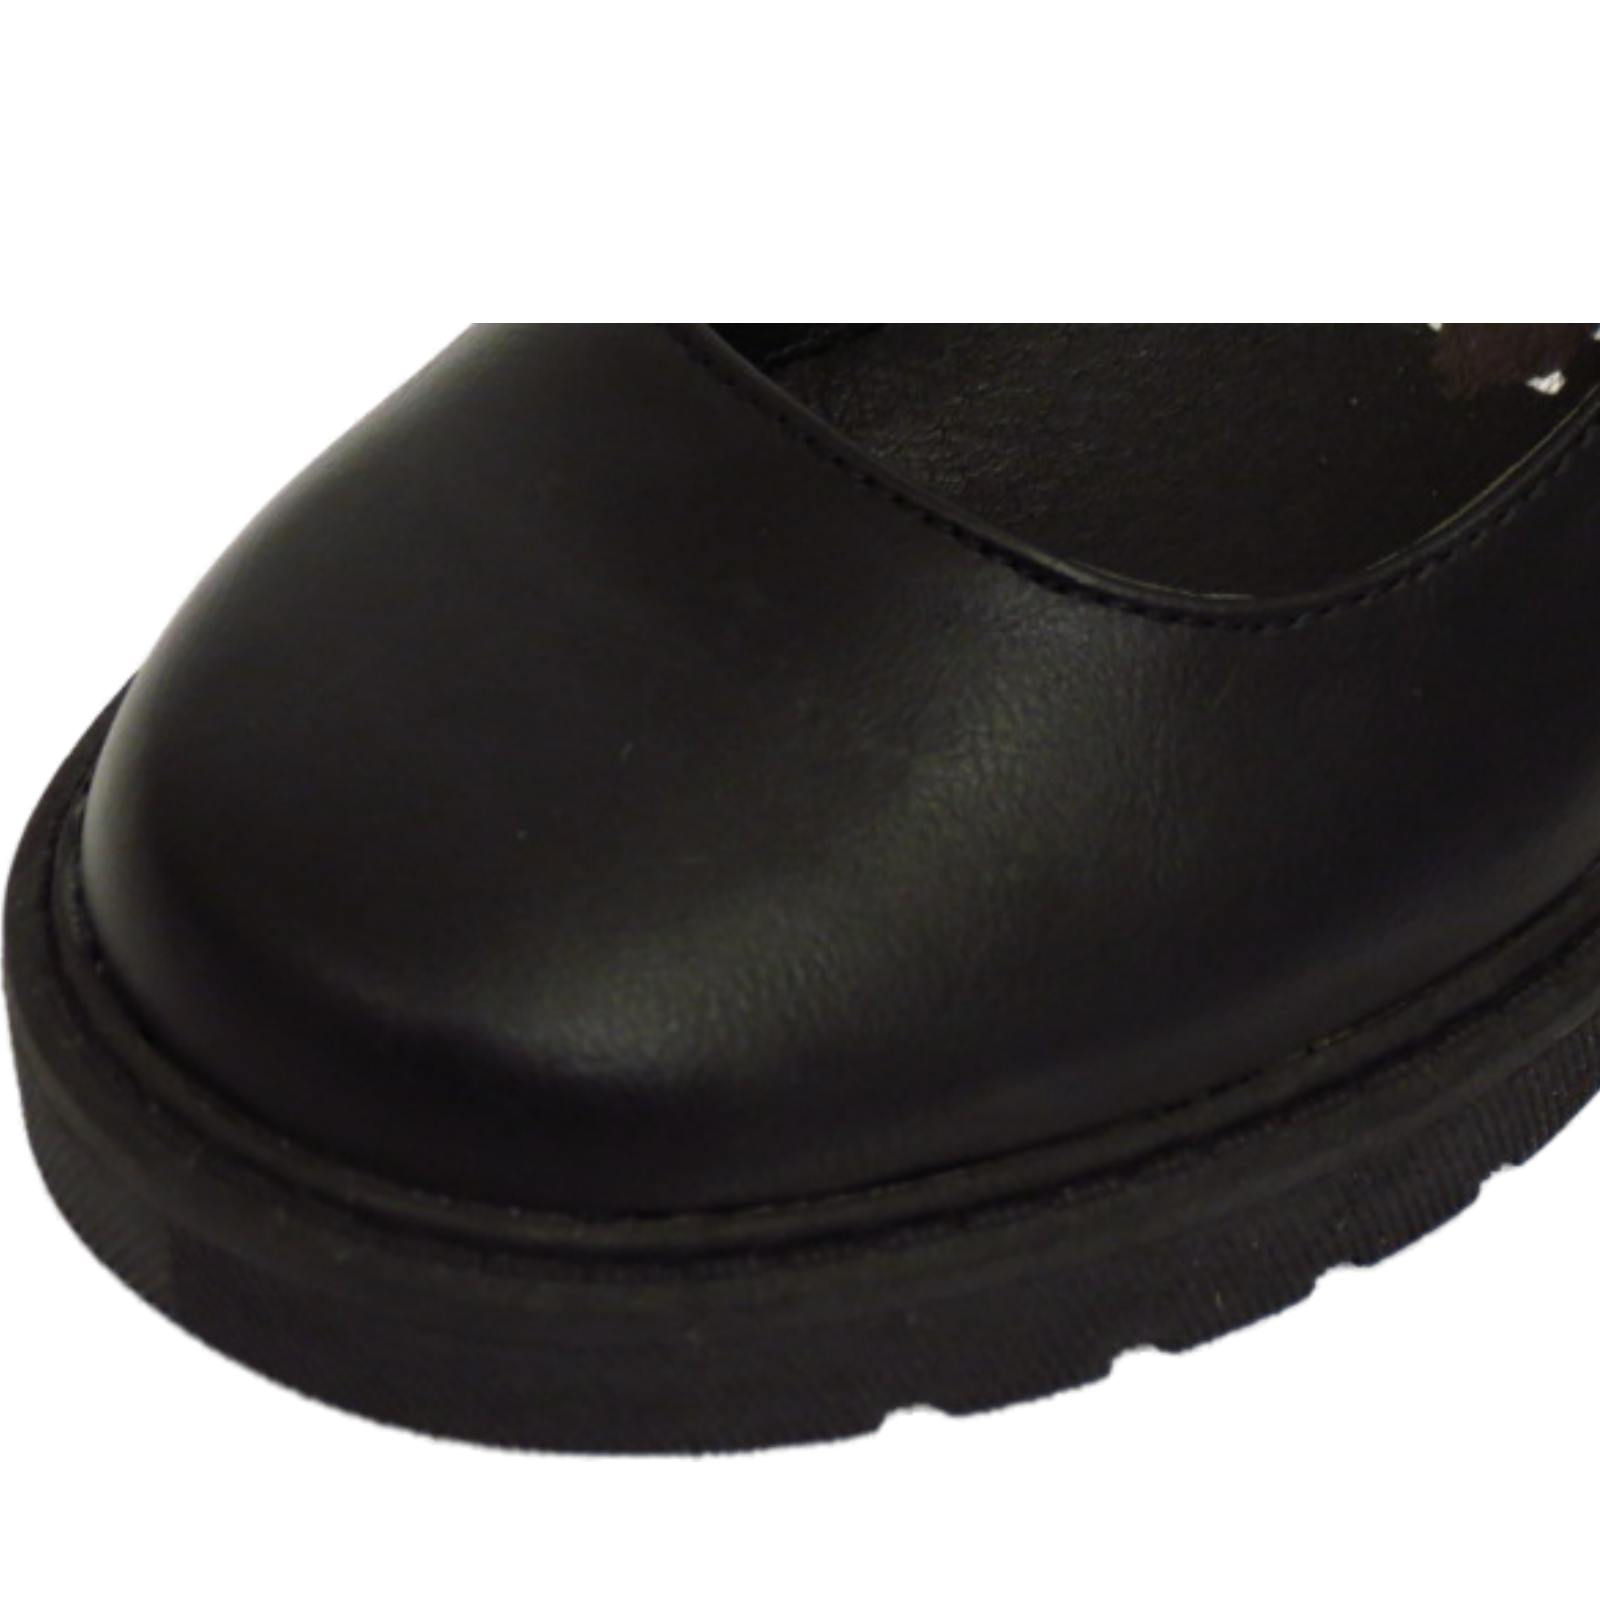 GIRLS-KIDS-CHILDRENS-BUCKLE-T-BAR-BLACK-SCHOOL-PUMPS-DOLLY-SMART-FLAT-SHOES-10-5 thumbnail 14